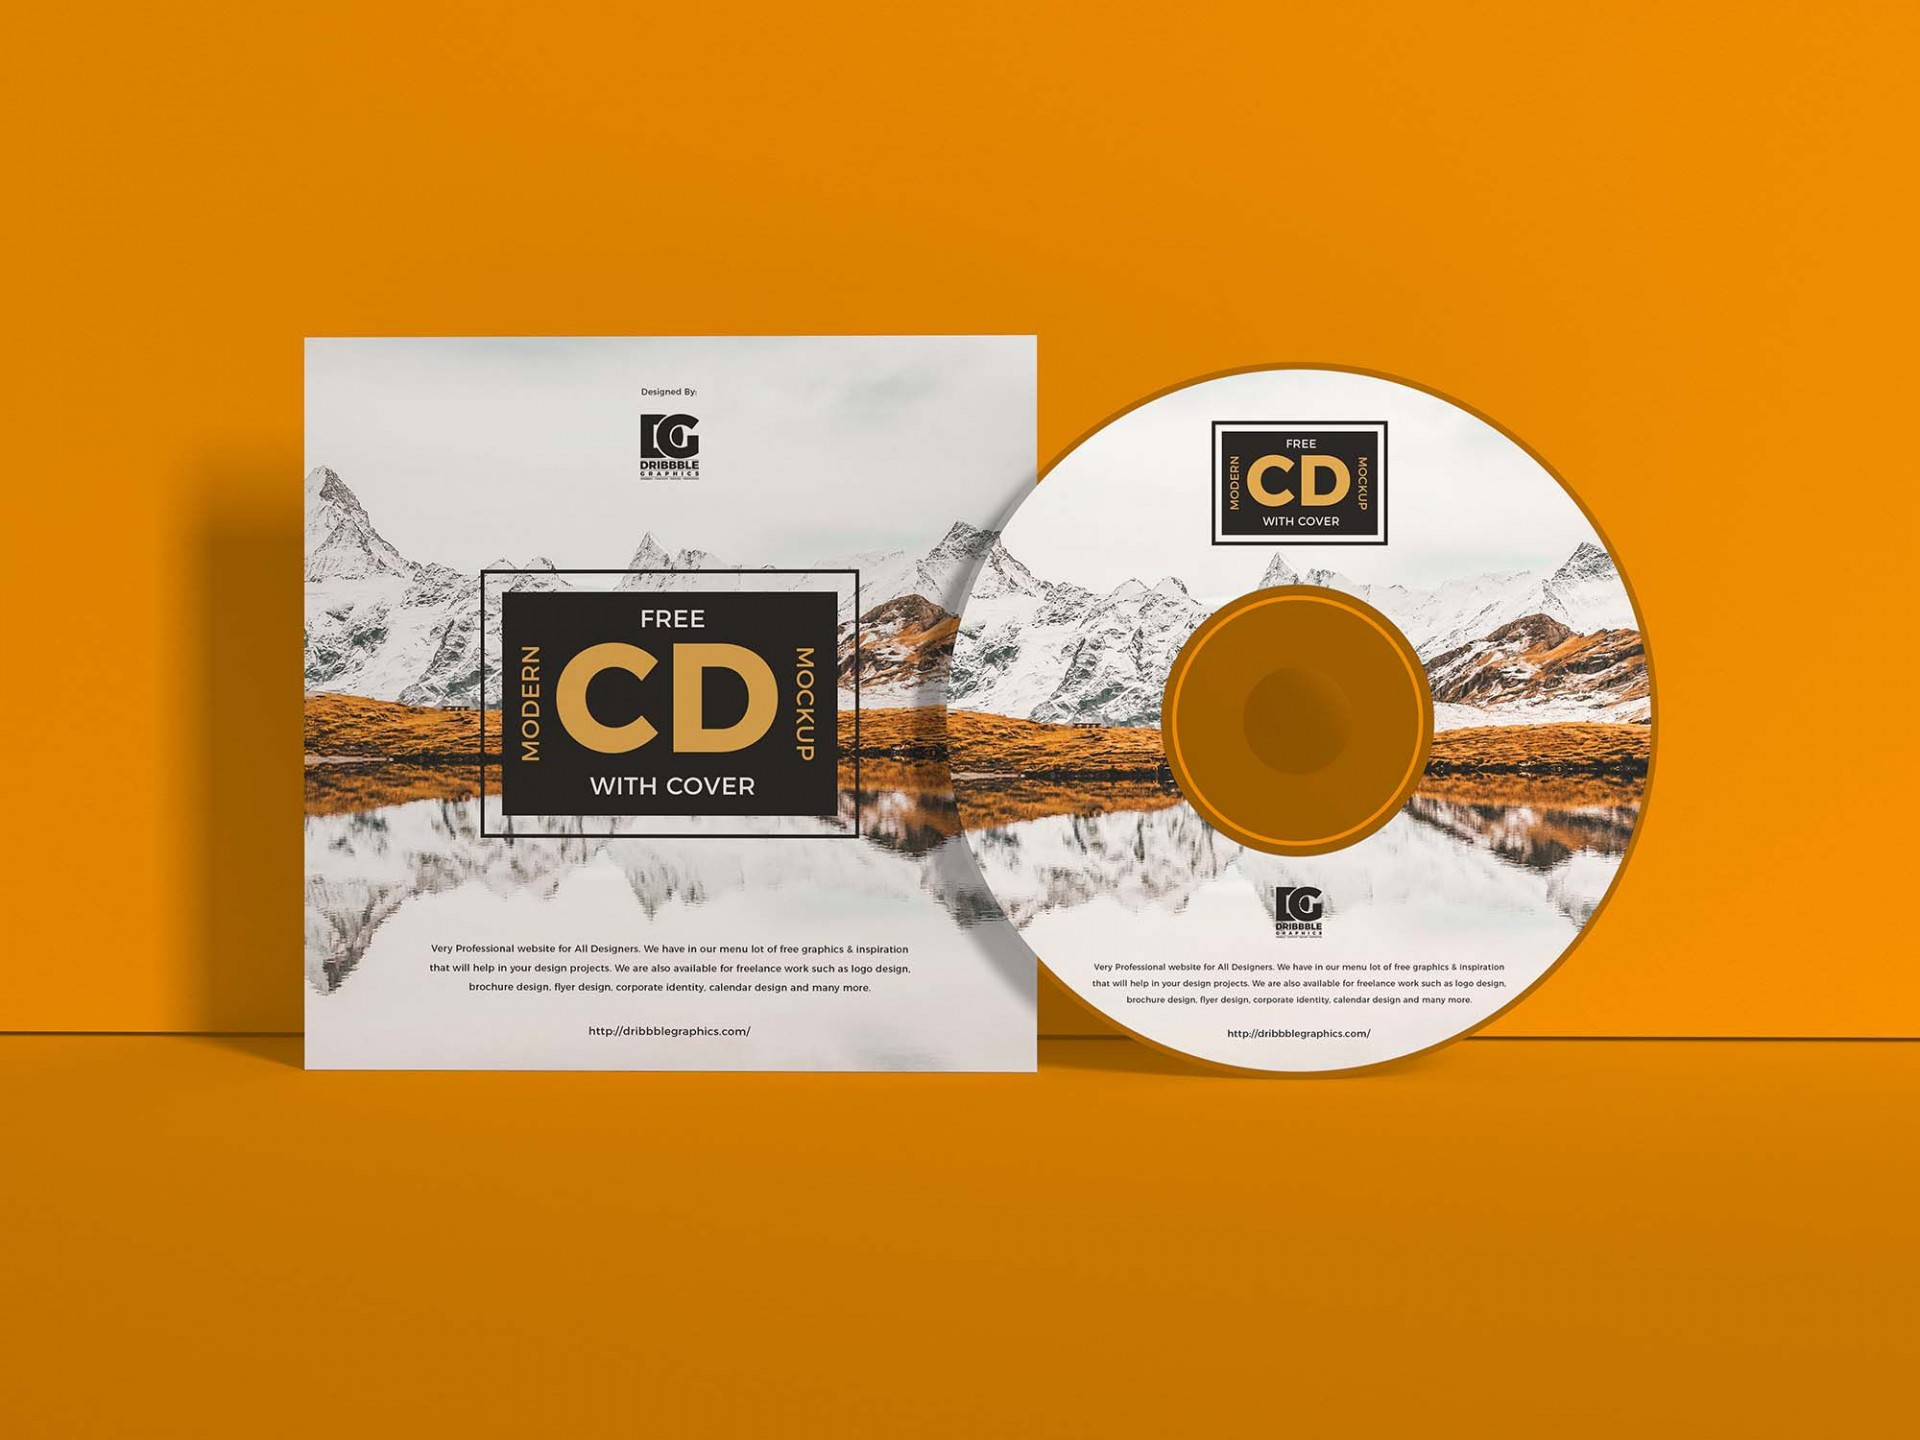 004 Beautiful Free Cd Cover Design Template Photoshop High Definition  Label Psd Download1920